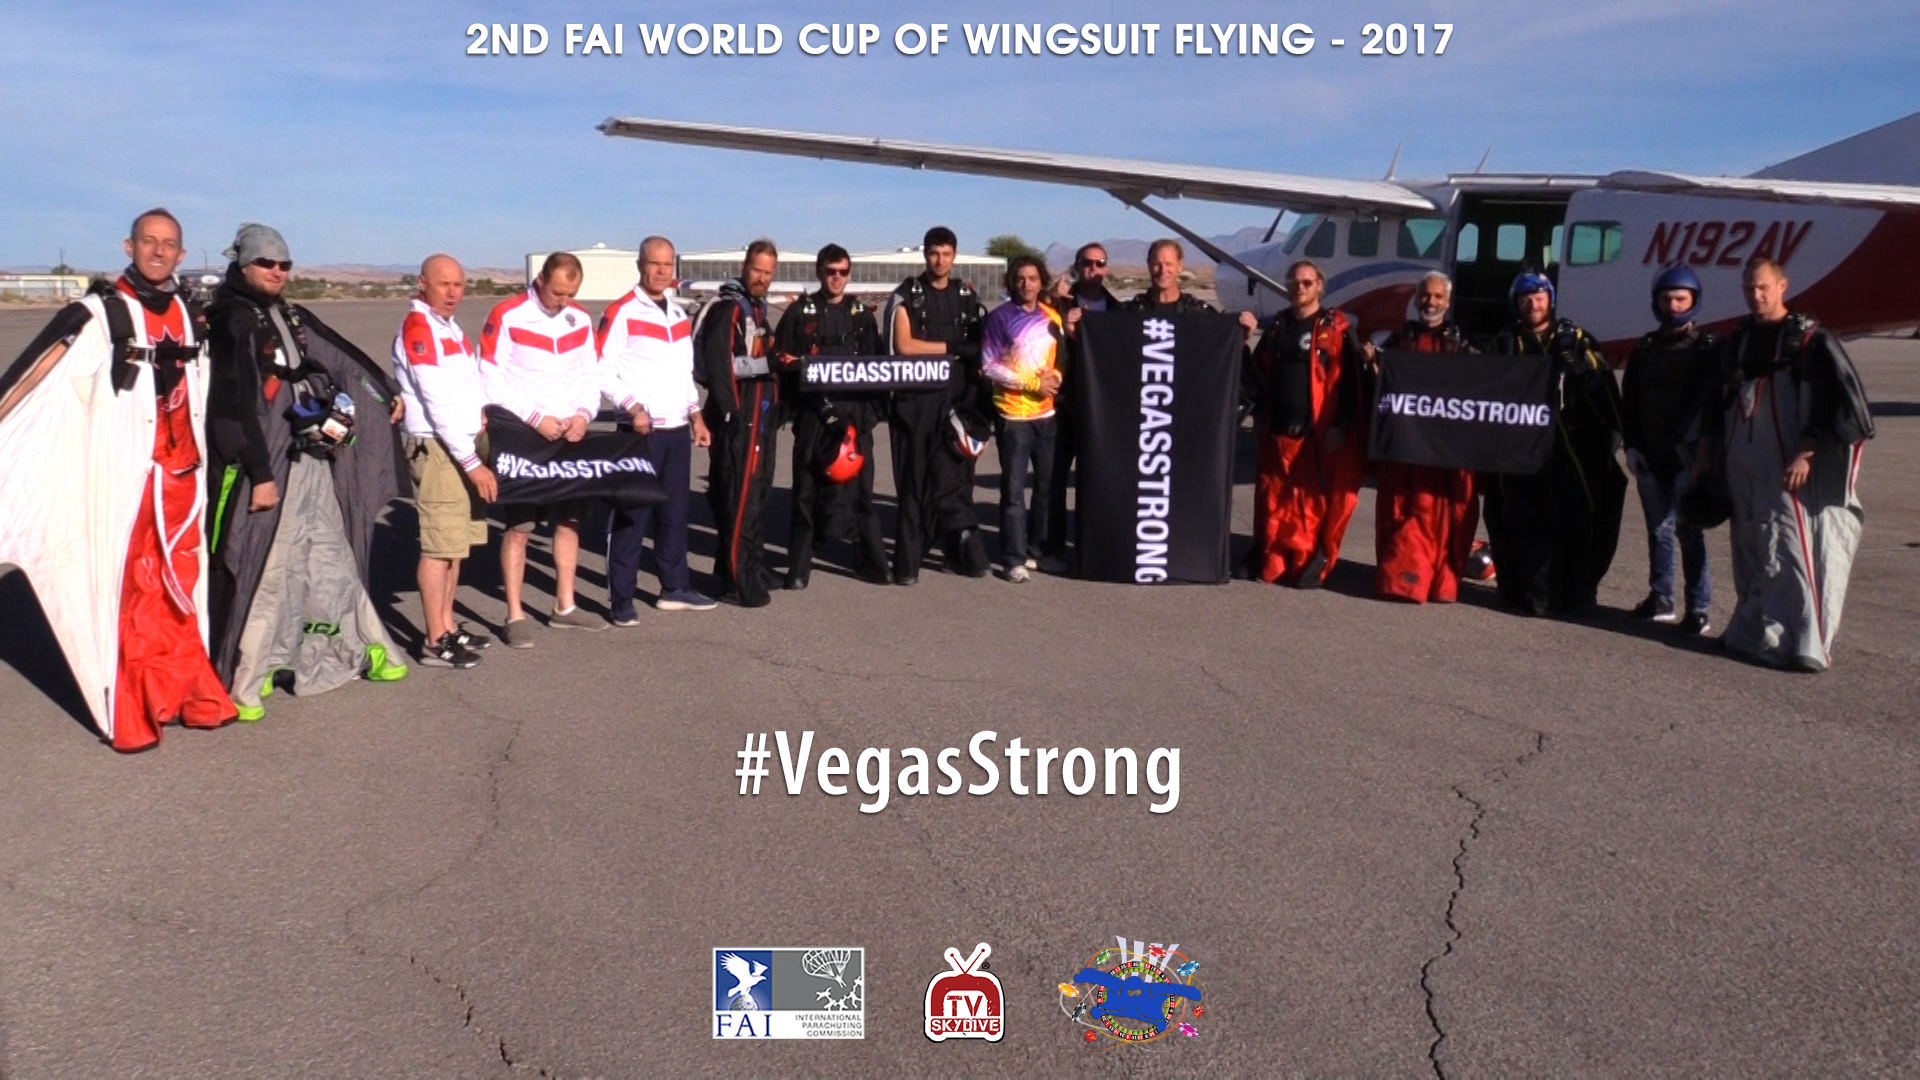 2ND FAI WORLD CUP OF WINGSUIT FLYING at Skydive Fyrosity – #VegasStrong